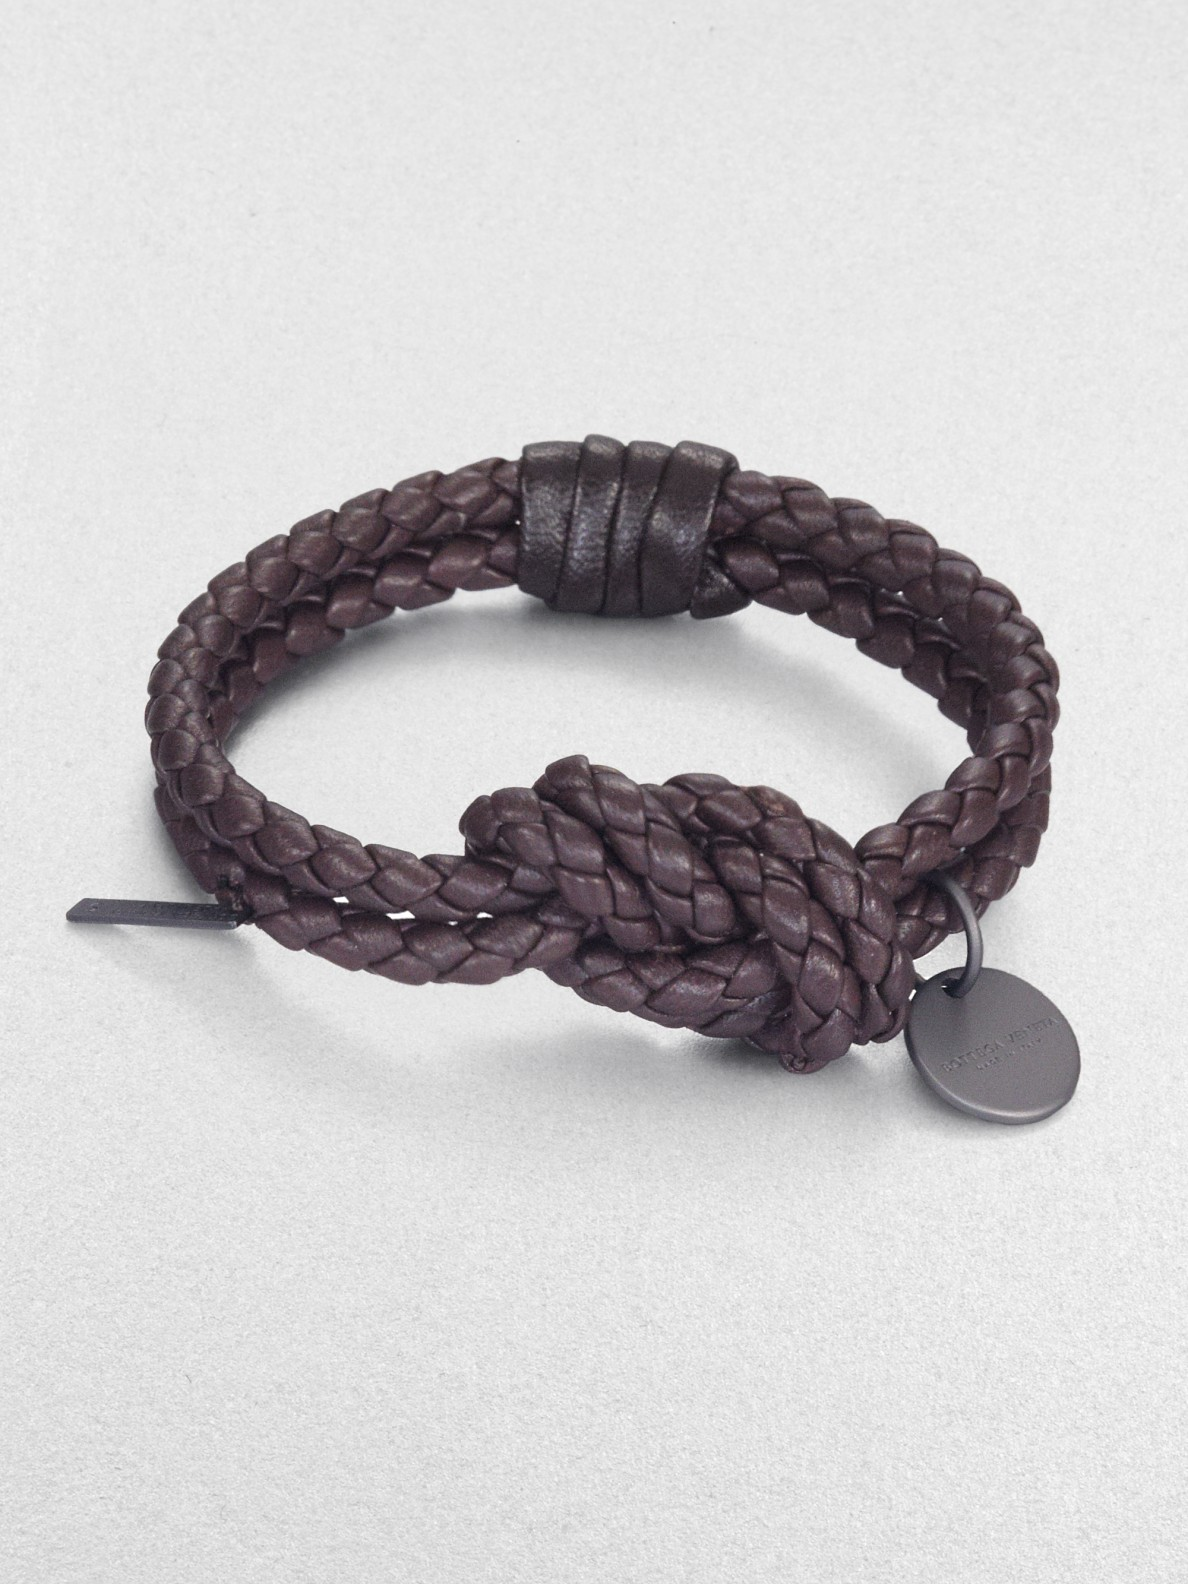 Bottega Veneta Intrecciato Leather Knot Bracelet In Brown